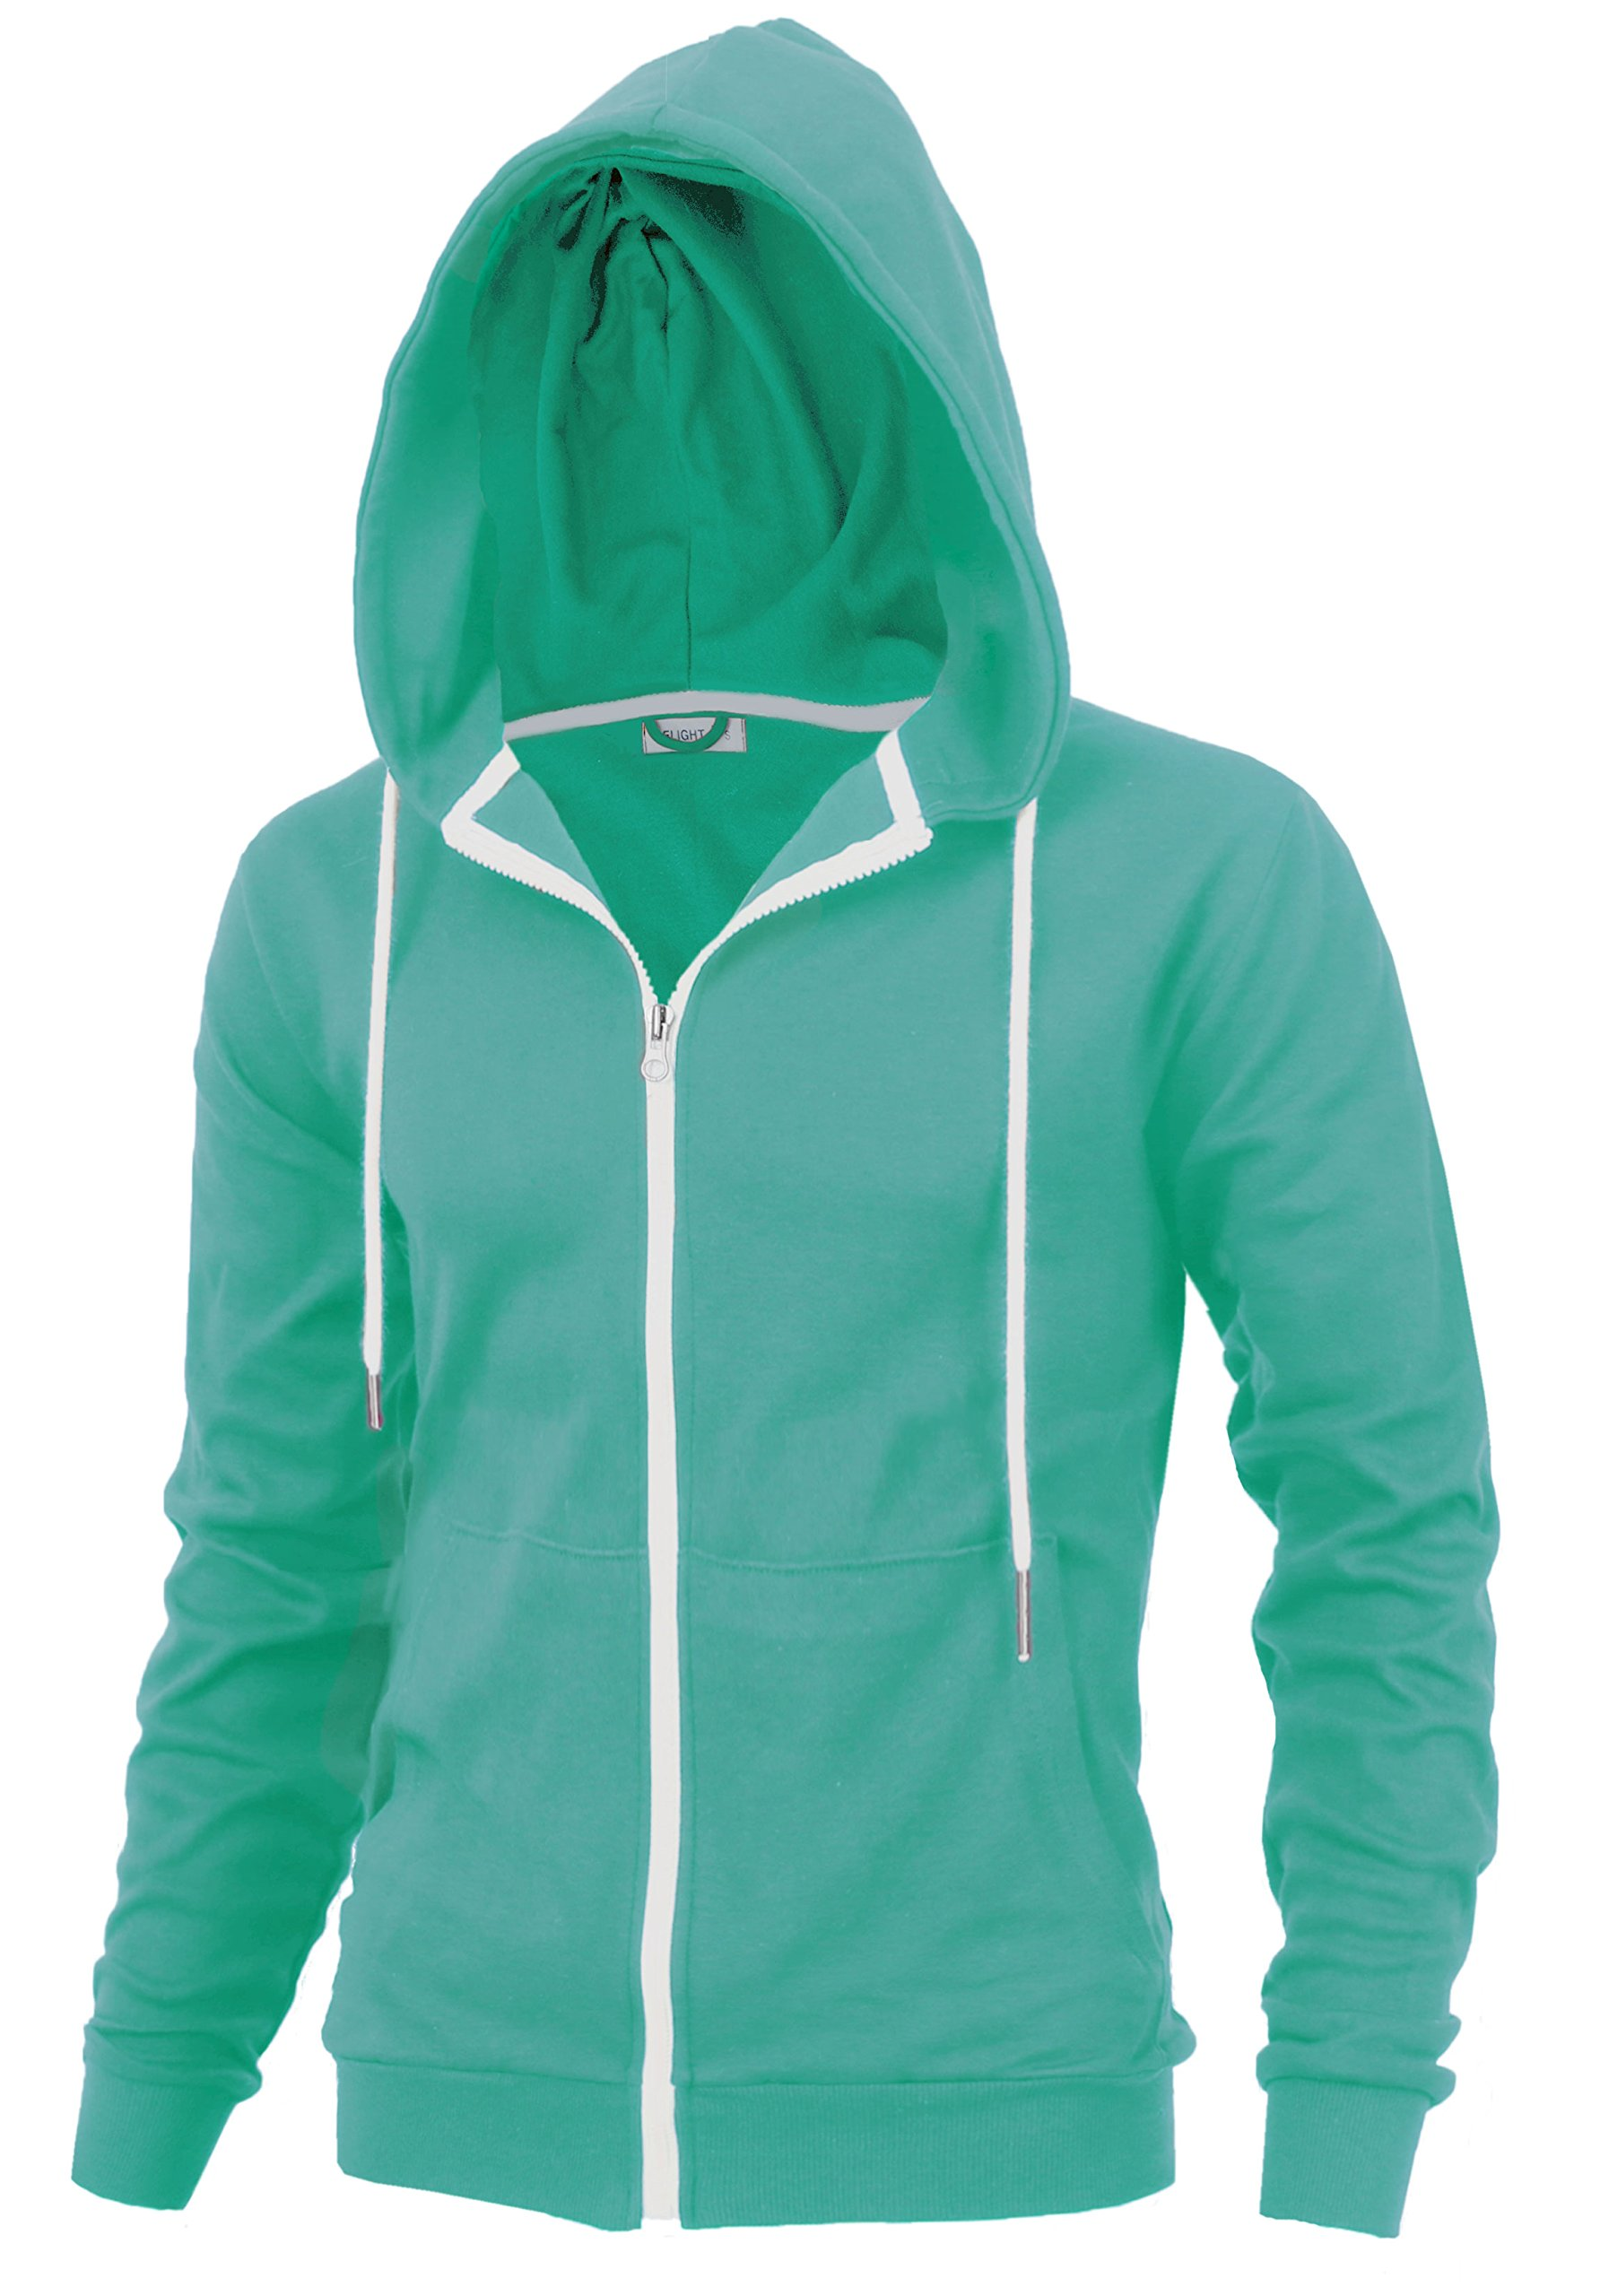 Delight Men's Fashion Fit Full-Zip Hoodie With Inner Cell Phone Pocket (US X-Large, Aqua)